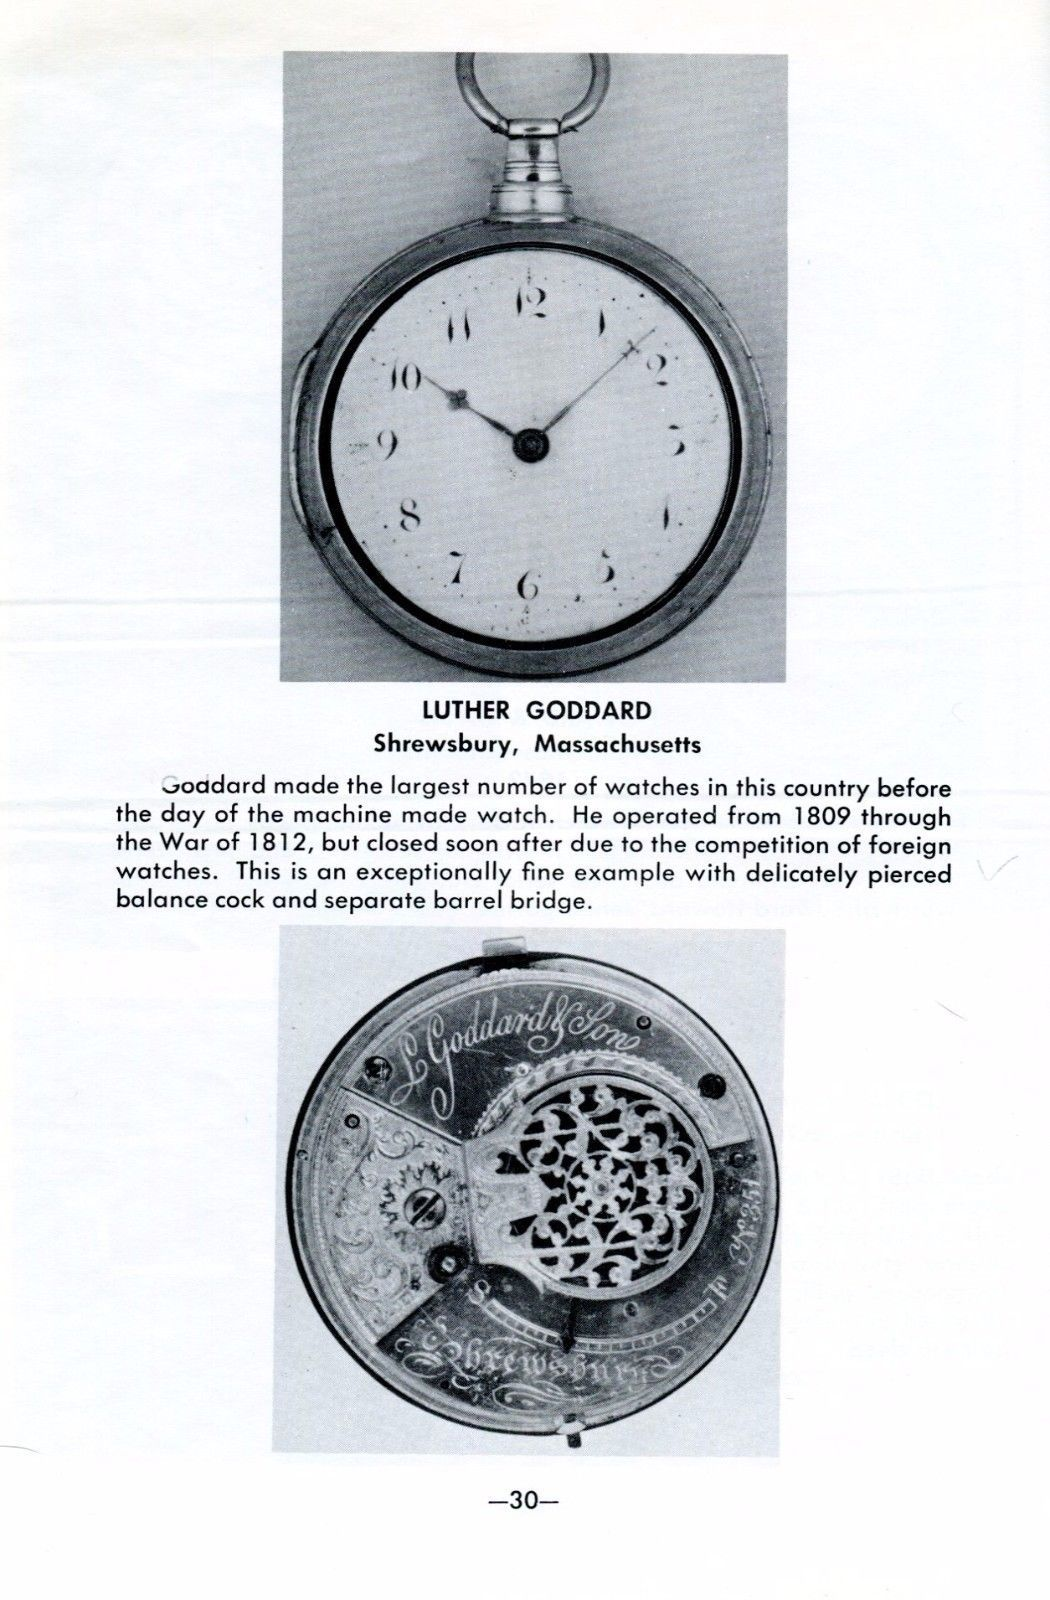 New England Clocks & Watches Exhibit 1959 NAWCC 15th Annual Convention PB